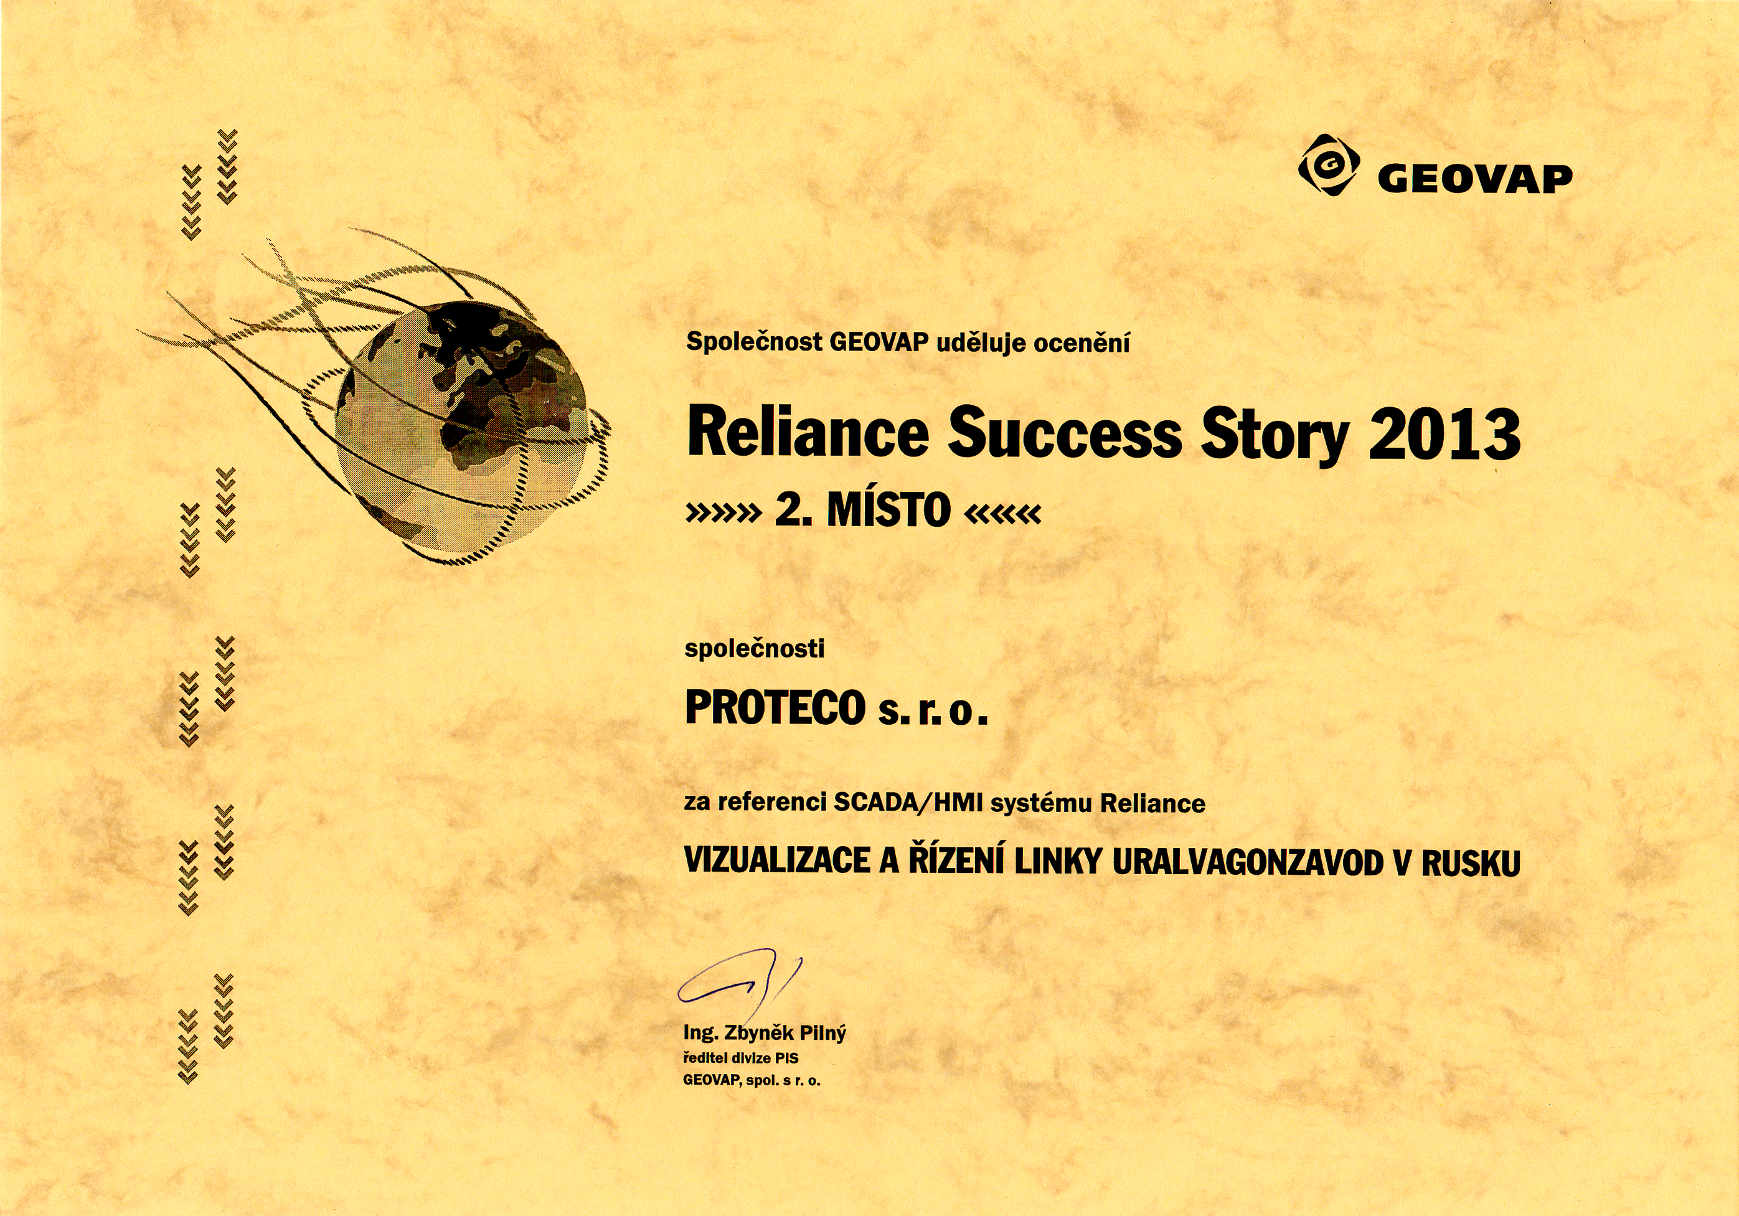 Reliance Success Story 2013